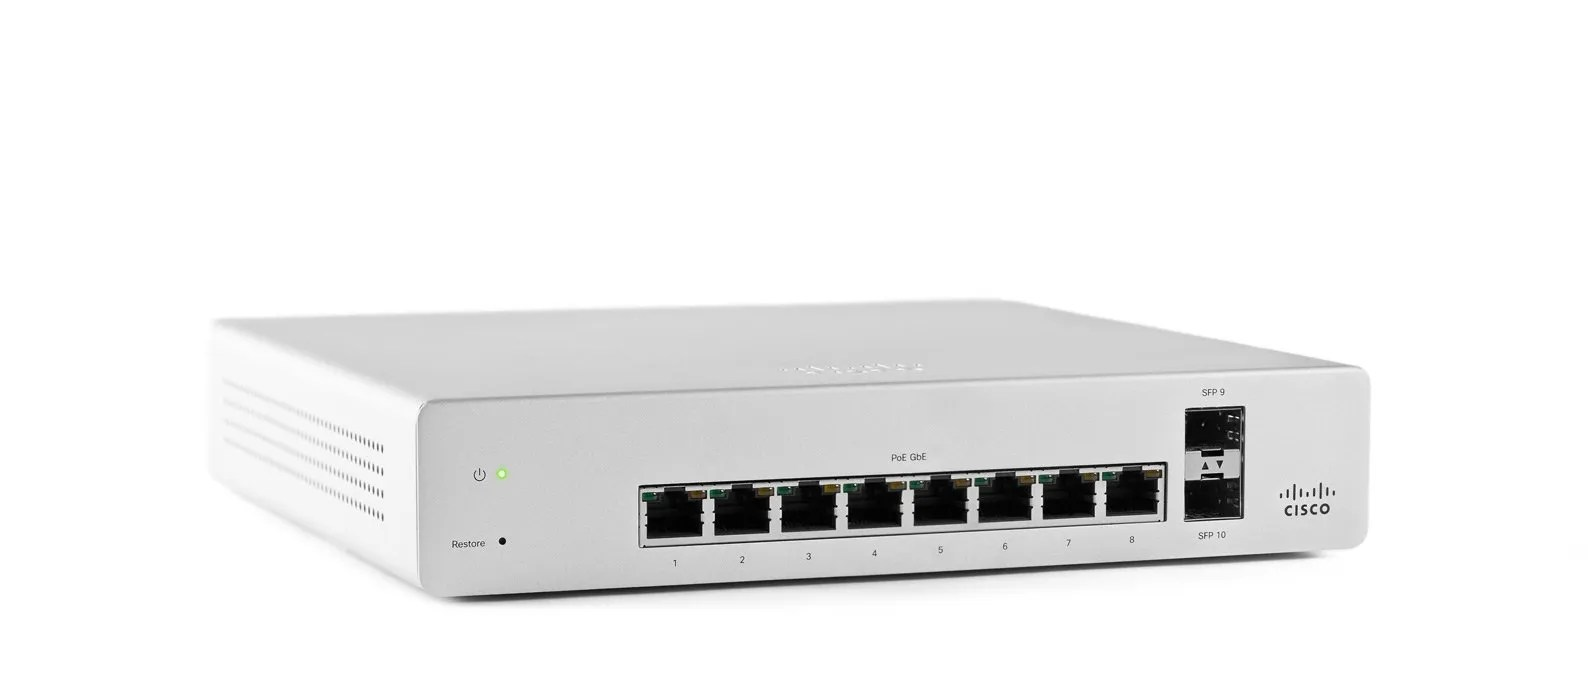 Cisco Meraki MS220-8/8P switch